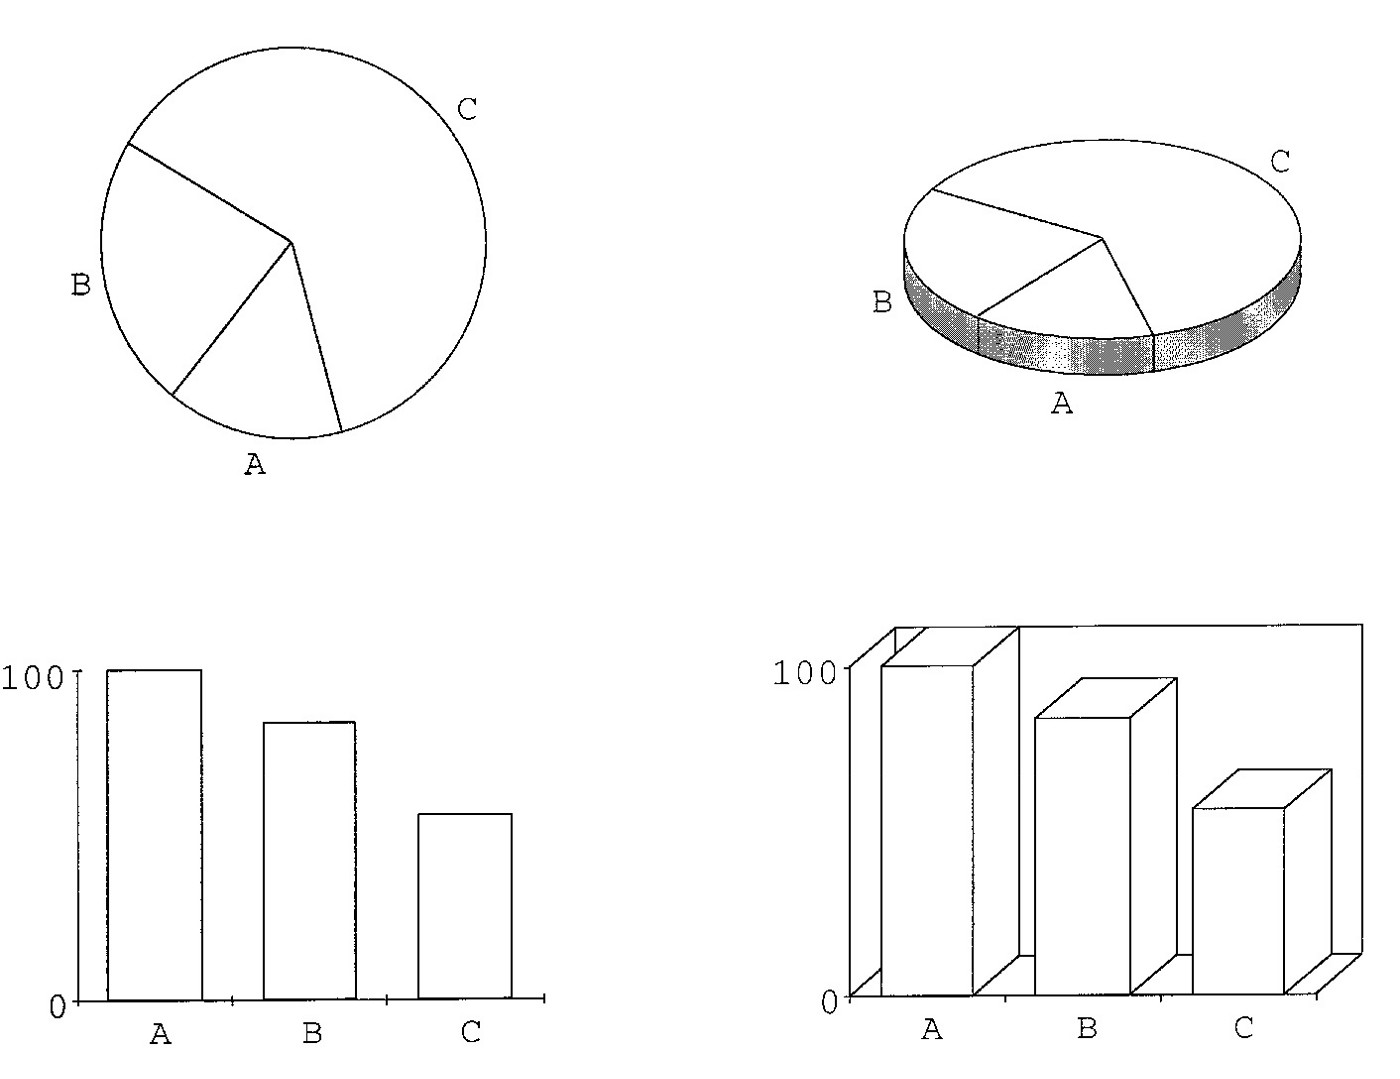 Which Diagram Represents An Accurate Visual Overview Of